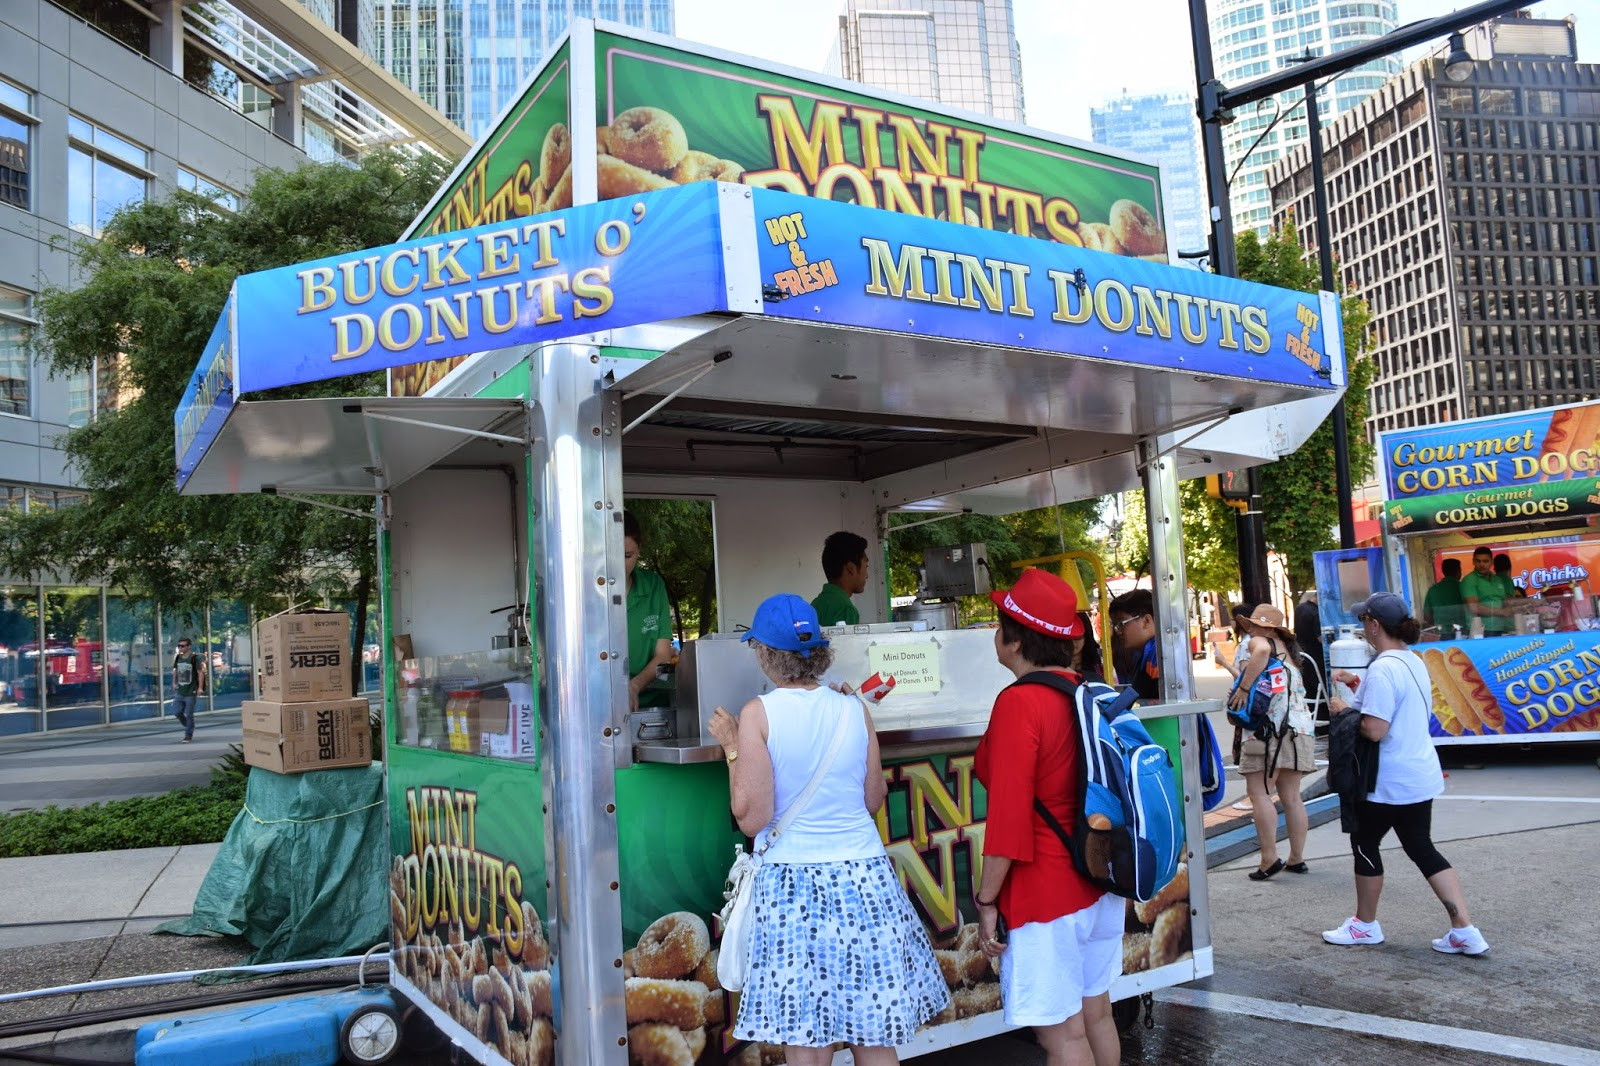 Canada day food truck roundup donuts donairs and corn dogs